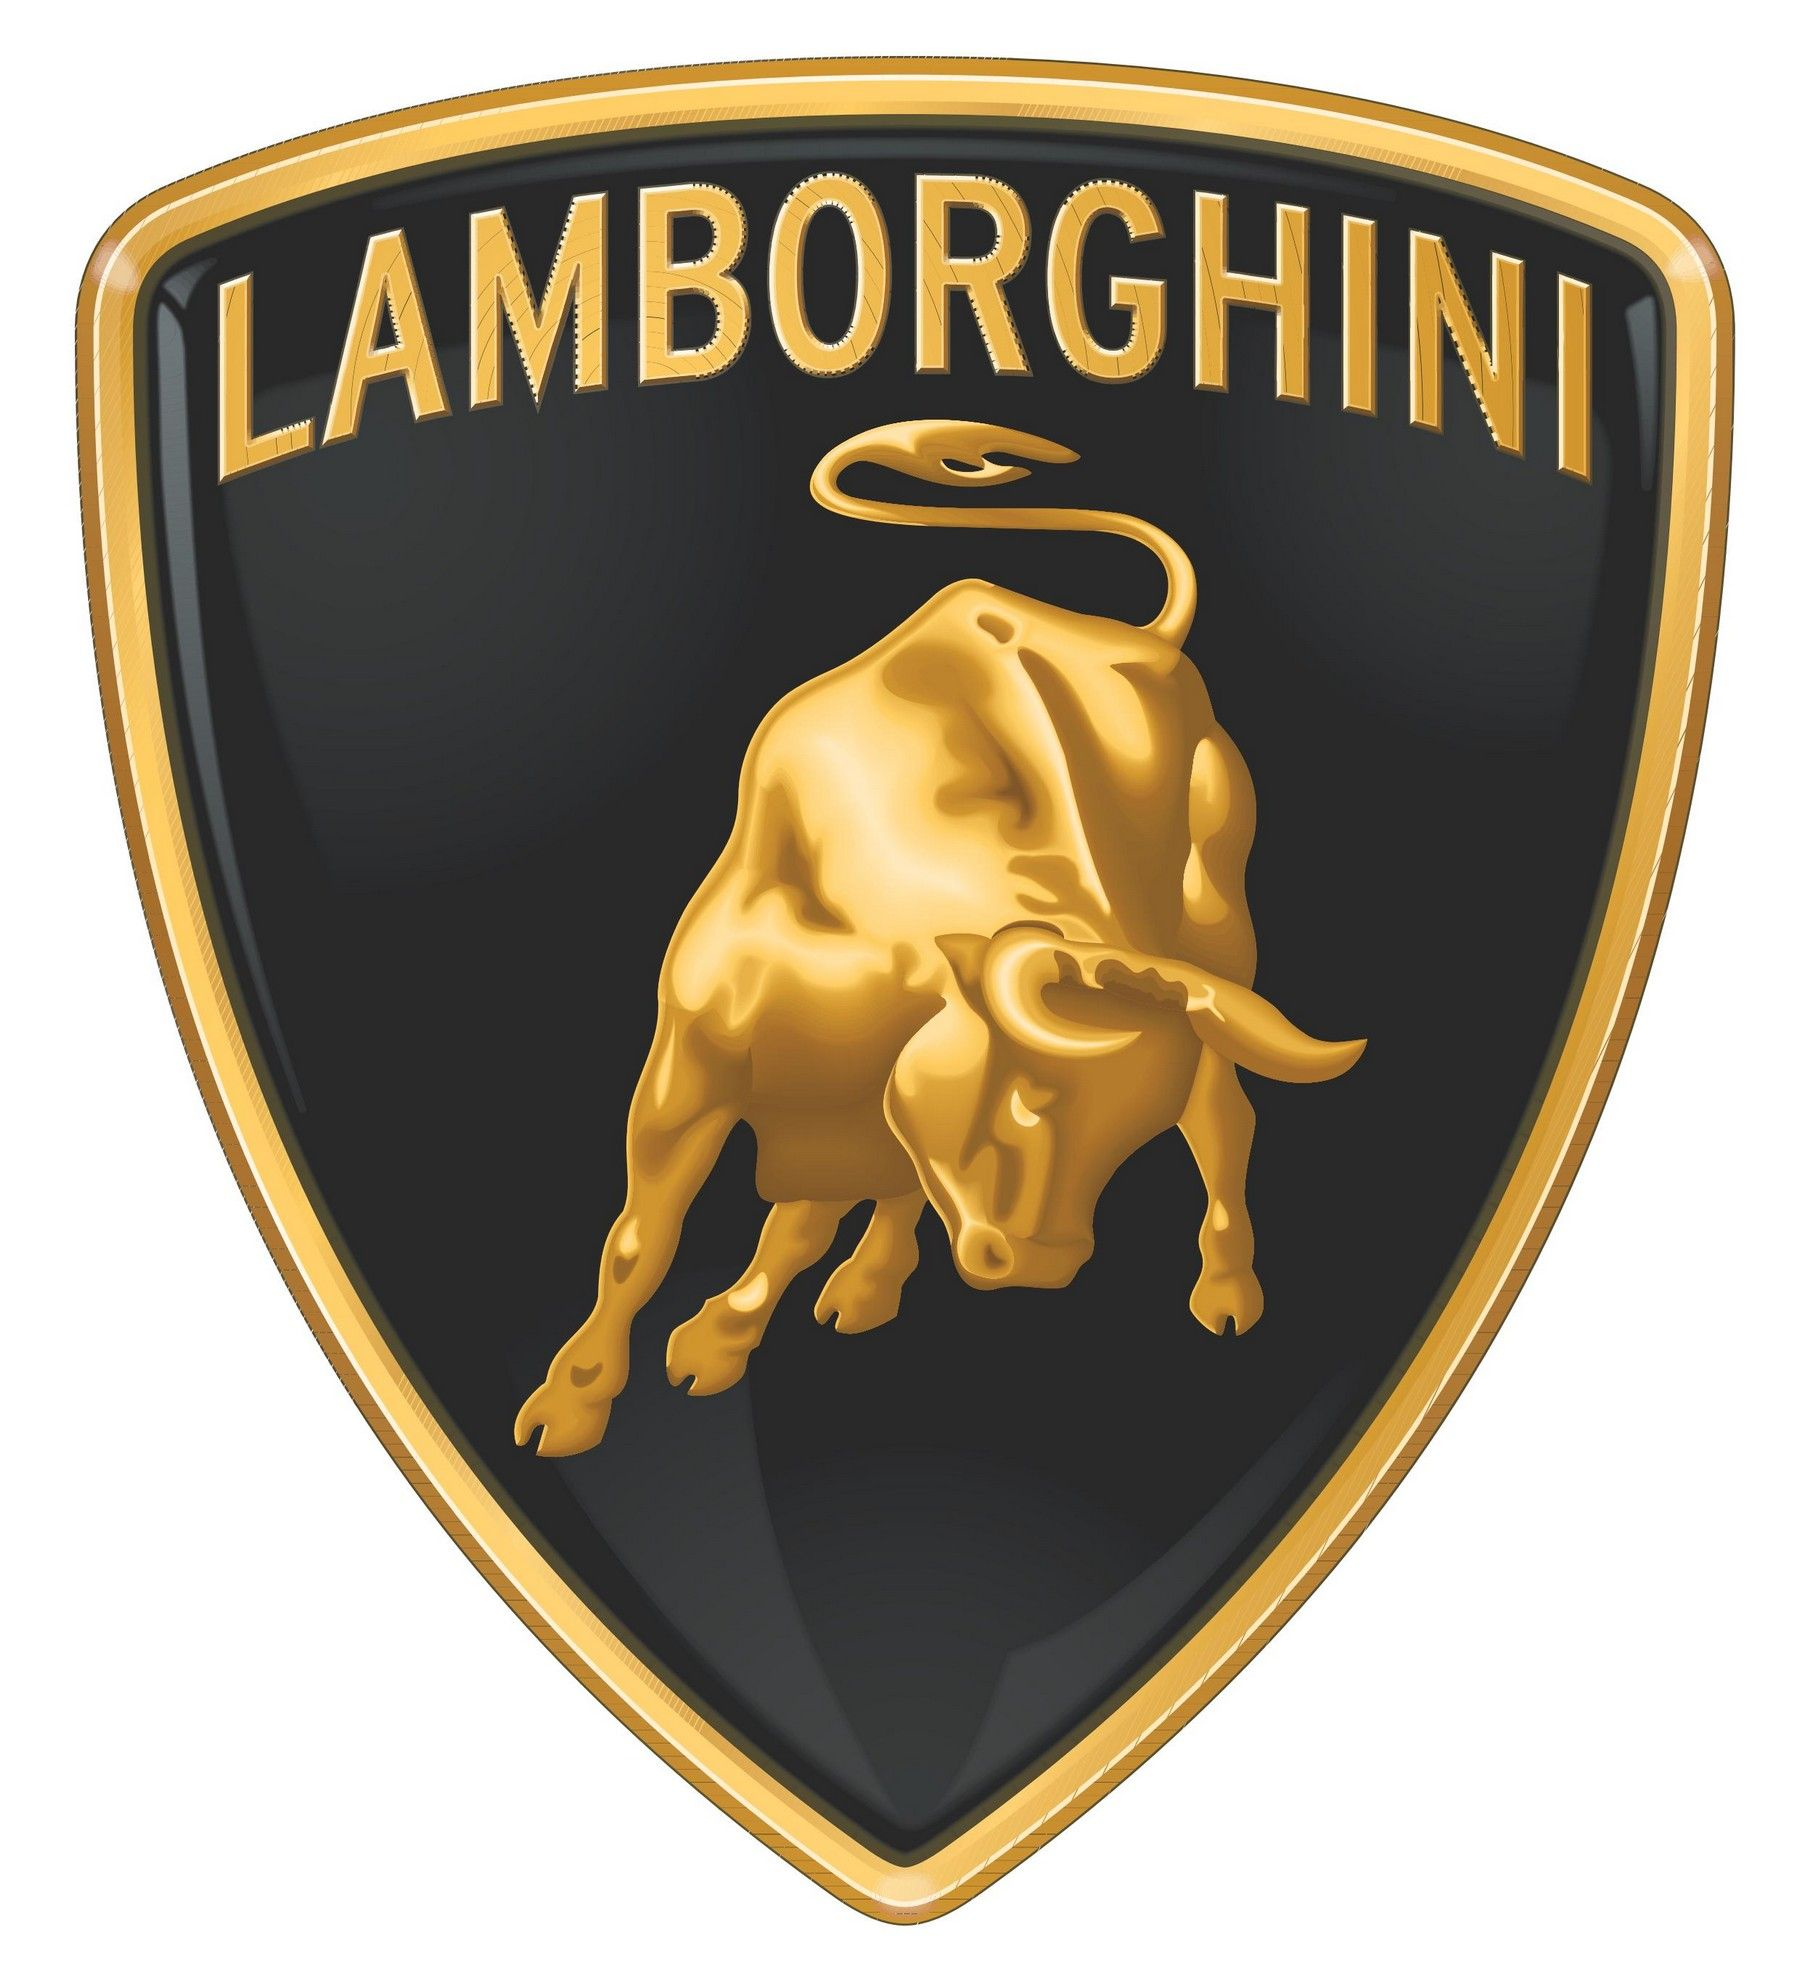 Luxury sports car logo sports car emblems sports cars - Find This Pin And More On Car And Motorcycle Logos By Infographics